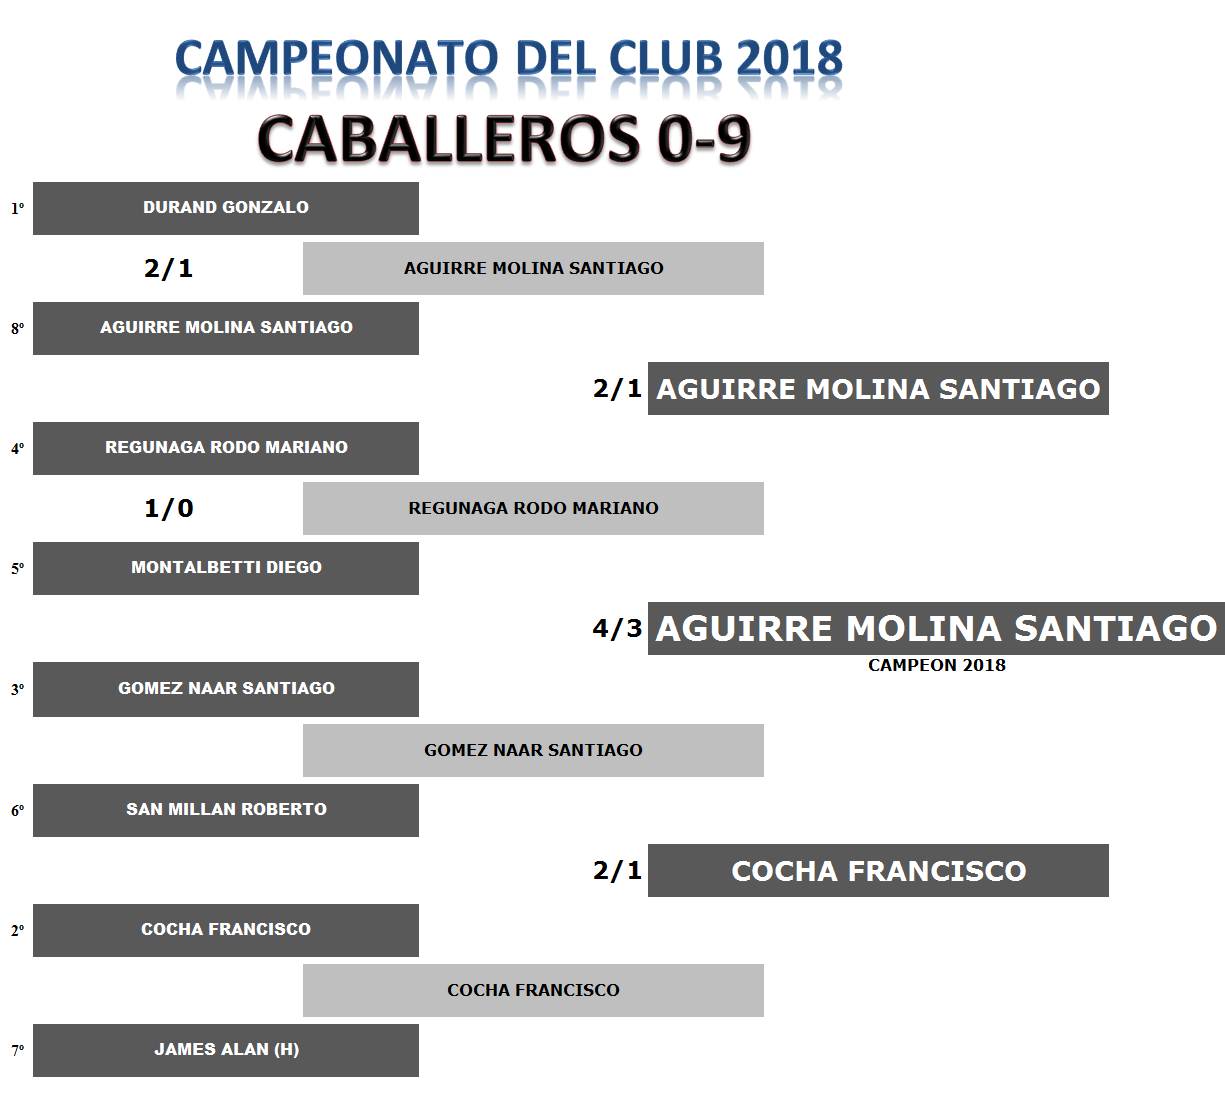 0 A 9 CAMPEON